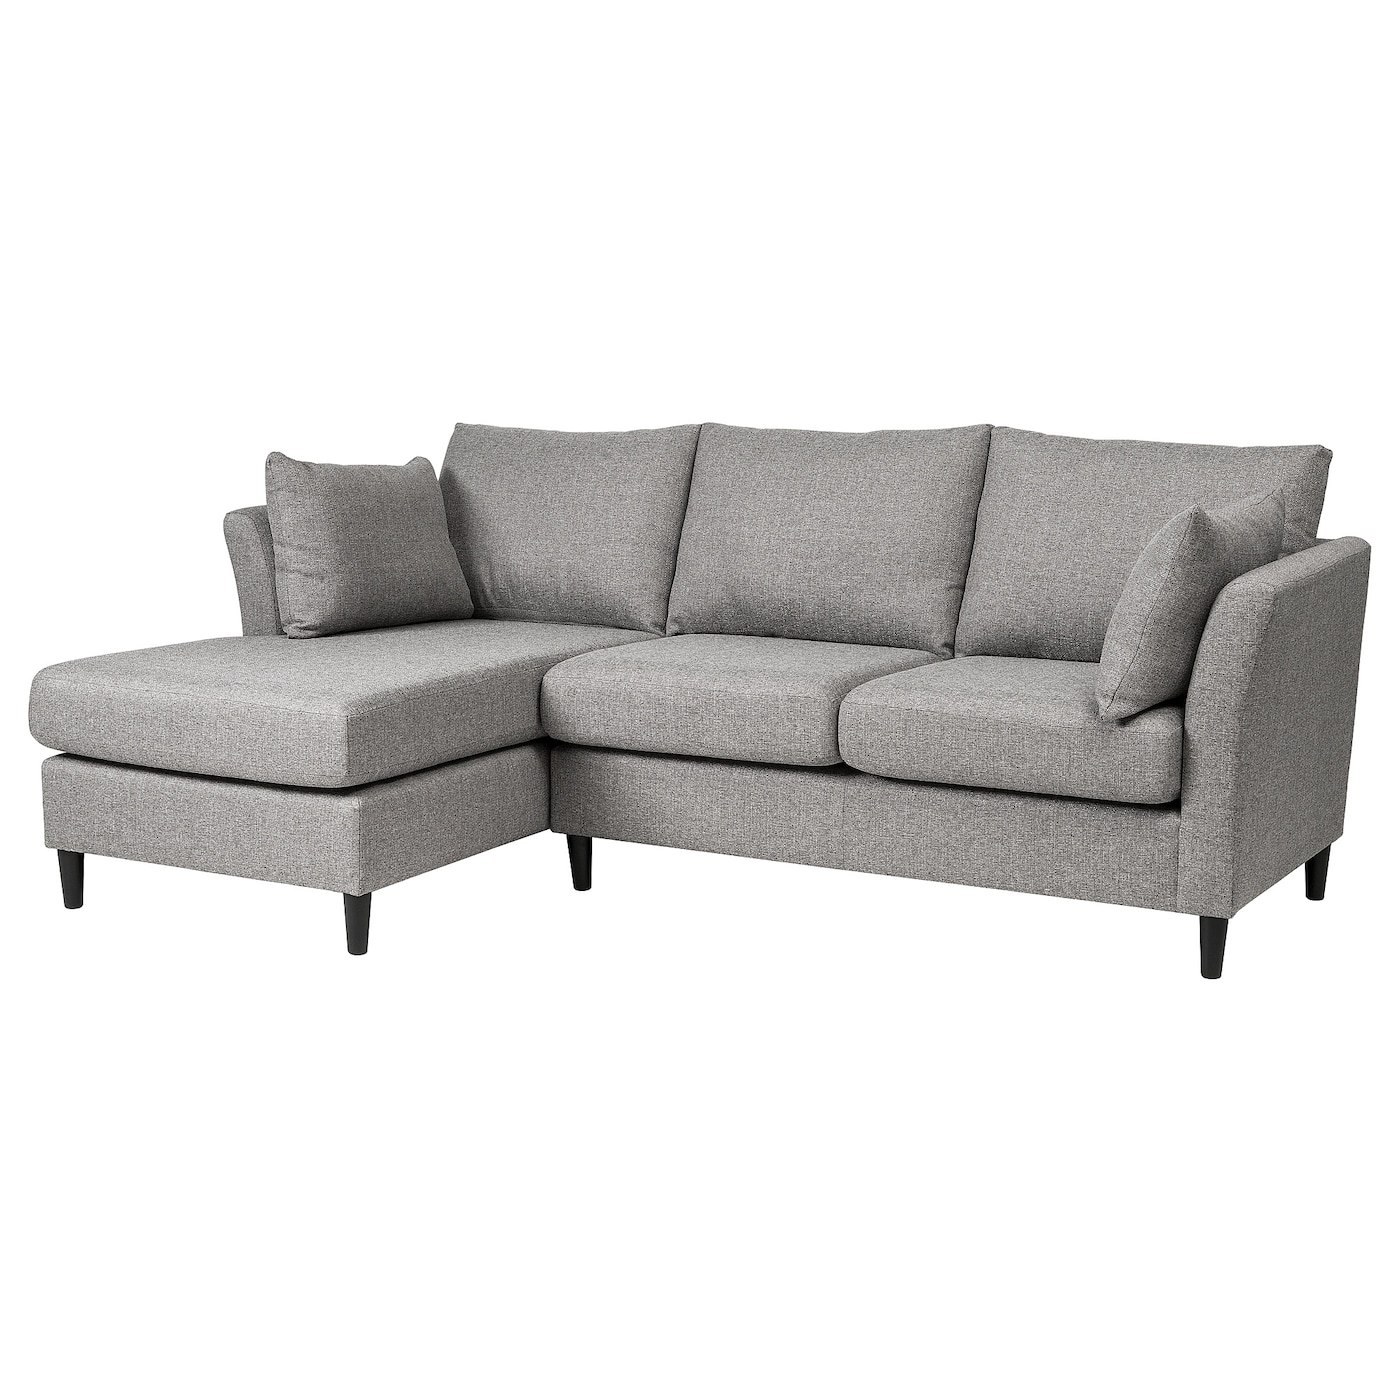 2 seater sofa with chaise sofa fascinating 2 seater chaise for Chaise longue en rotin ancienne